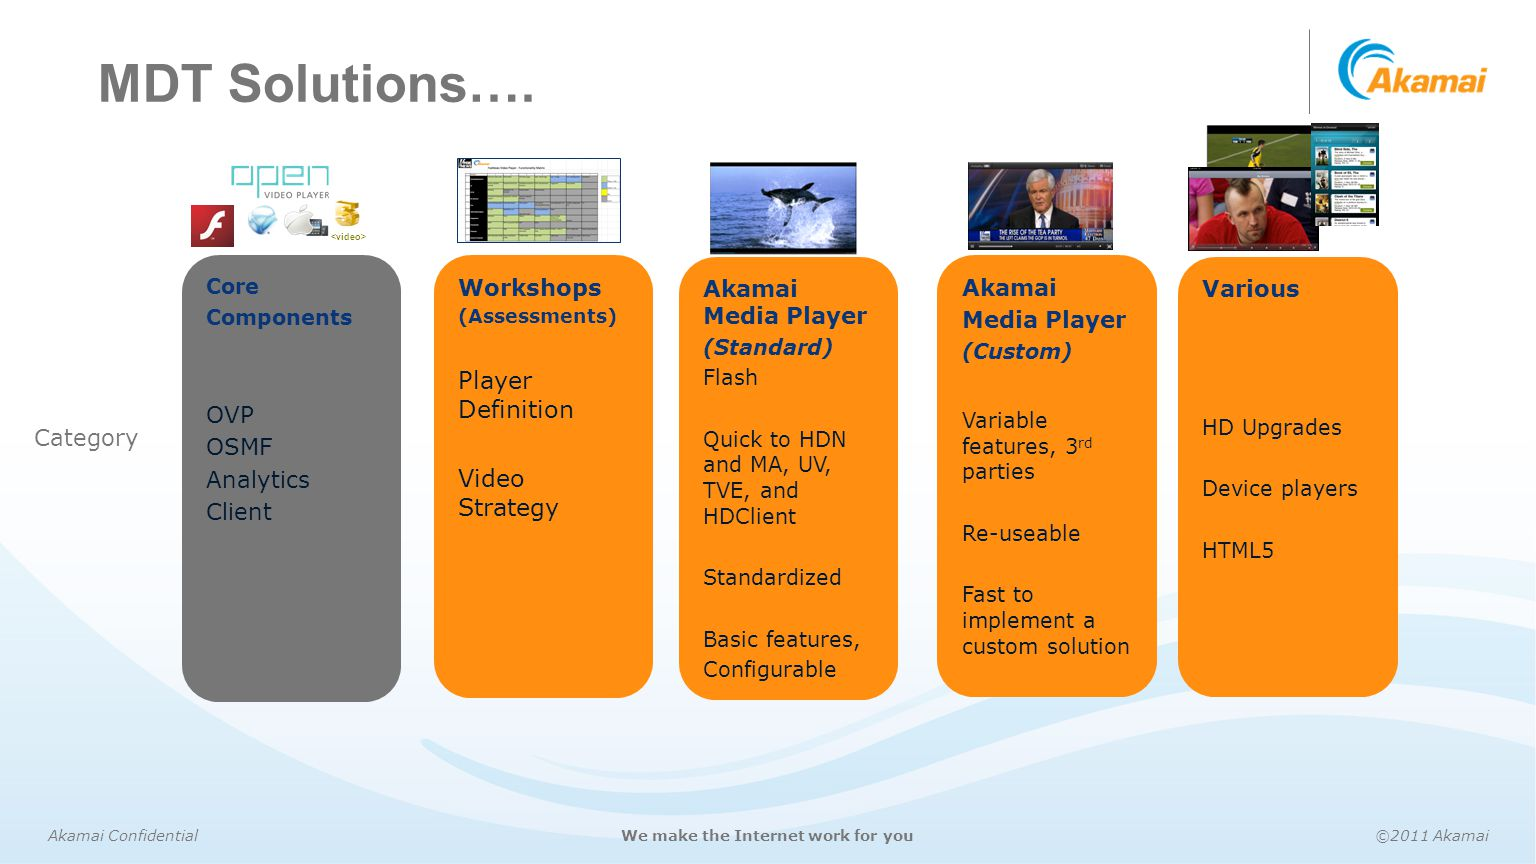 Akamai Confidential©2011 AkamaiWe make the Internet work for you MDT Solutions…. Core Components OVP OSMF Analytics Client Akamai Media Player (Standa